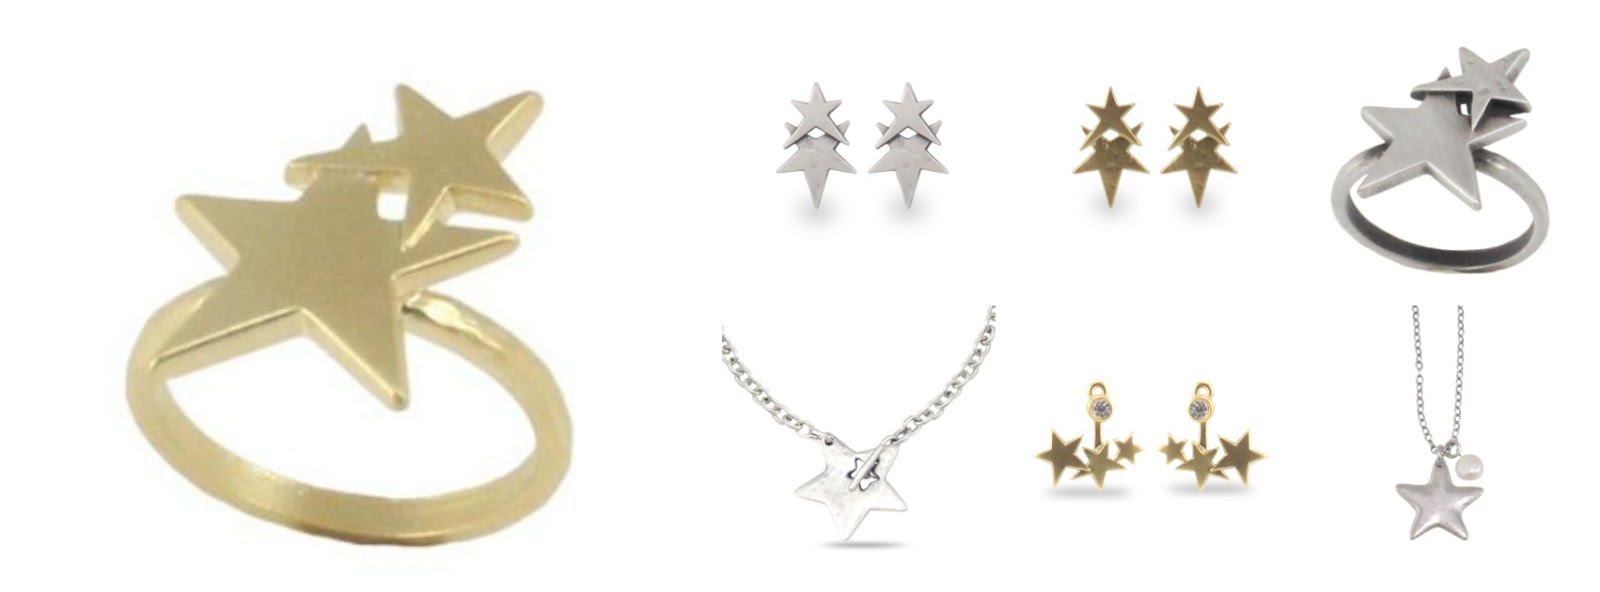 Danon star jewellery from LizzyO https://www.whatlizzyloves.com/shop/